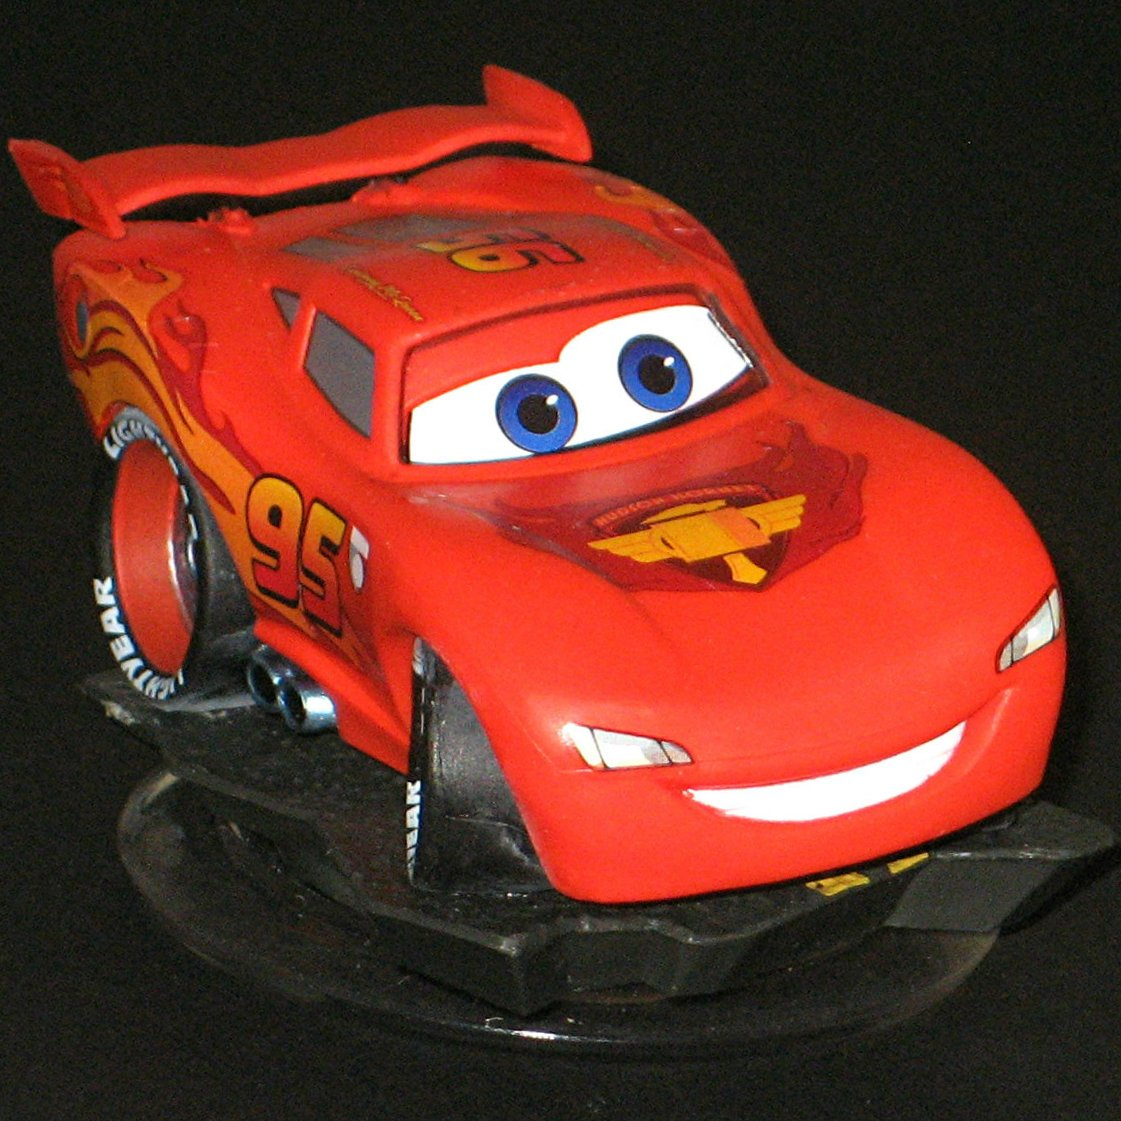 Crystal Clear Lightning McQueen Disney Infinity 1.0 Cars Character Game Figure